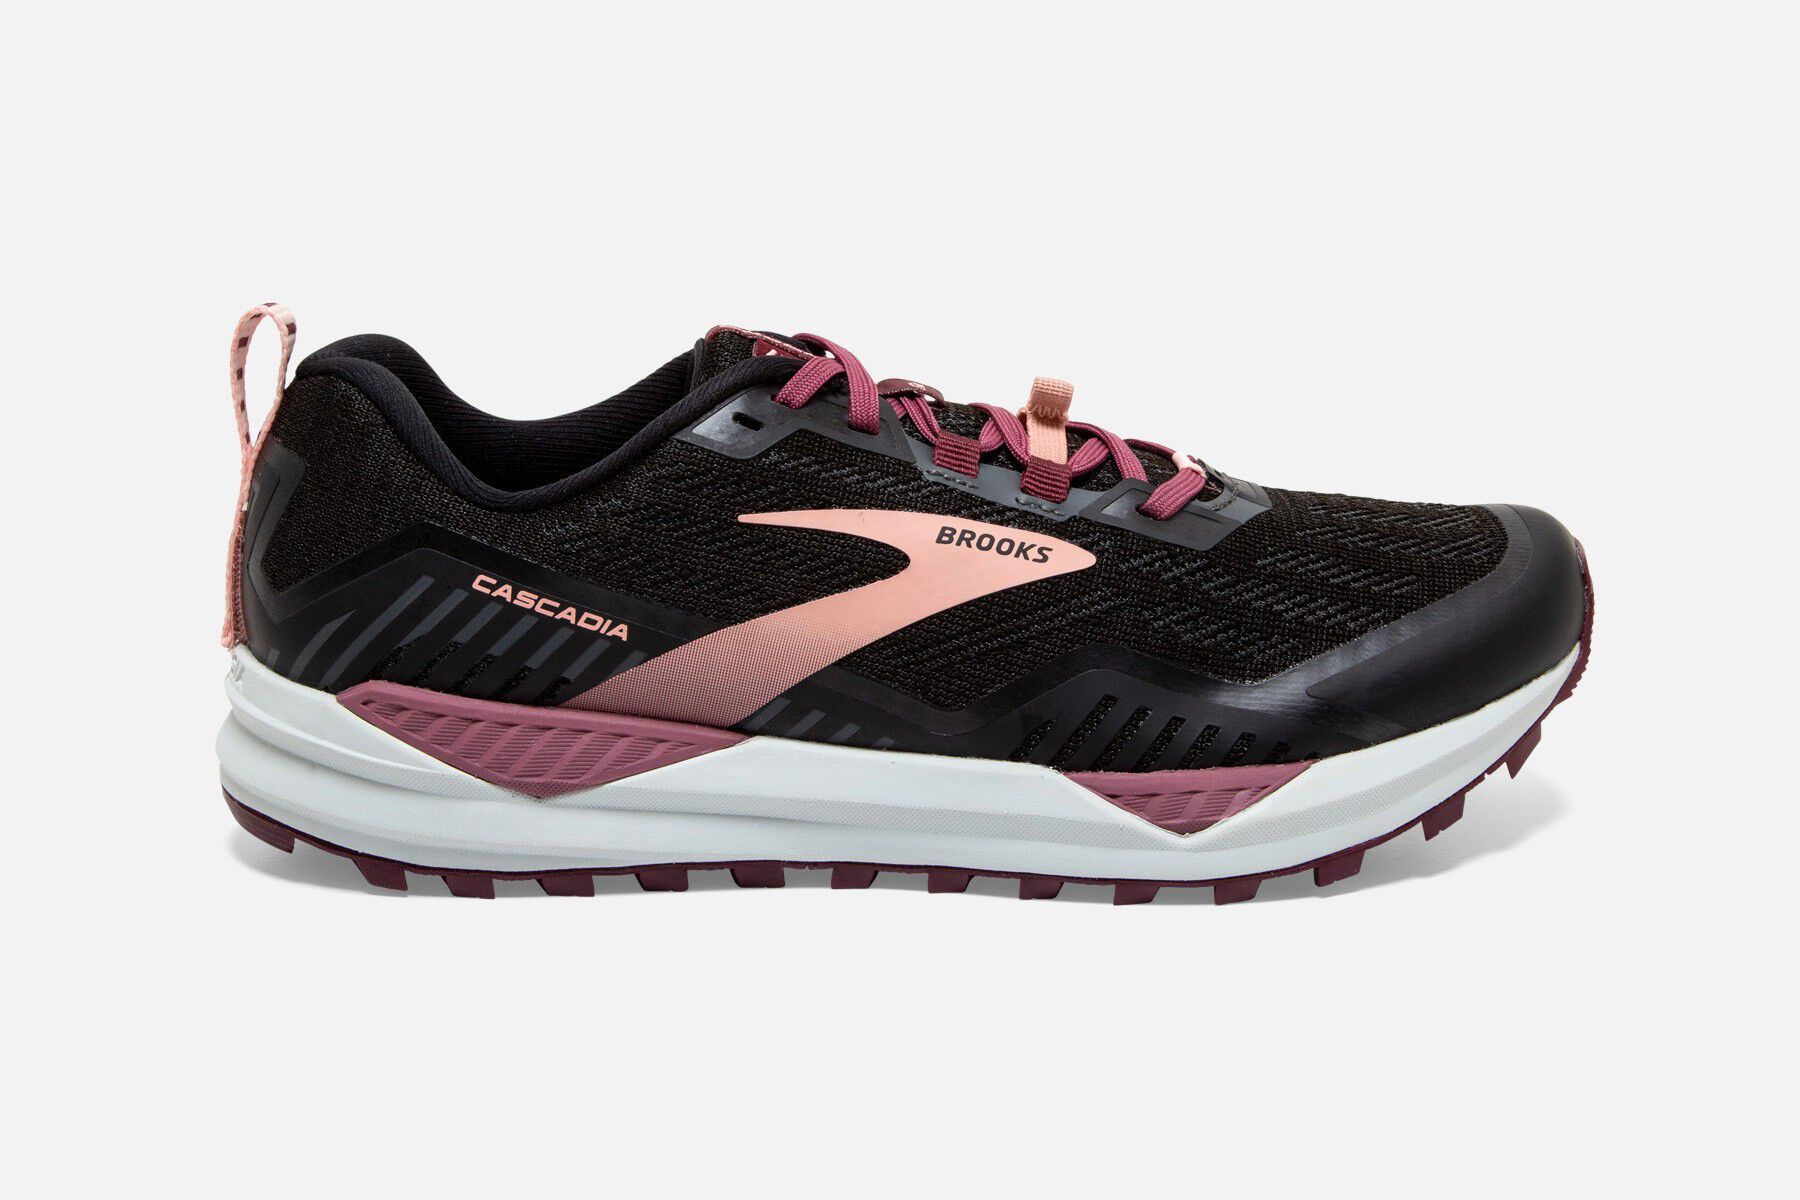 brooks running shoes women